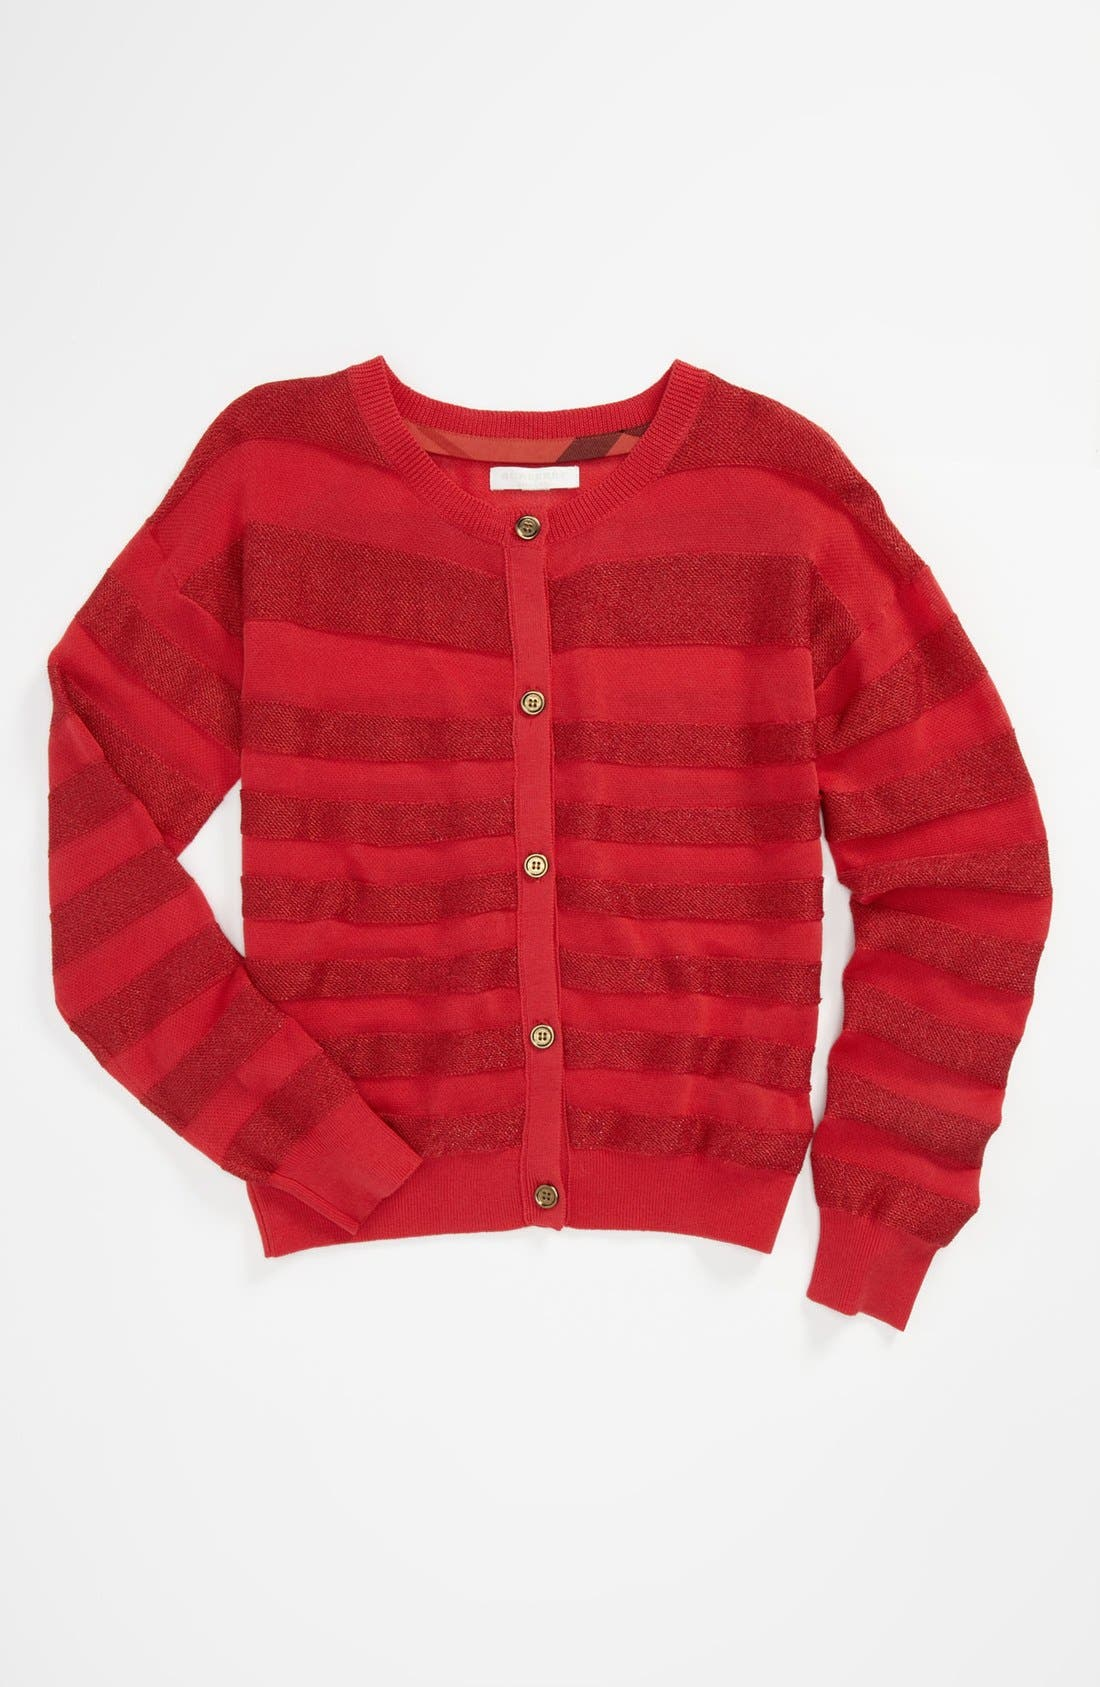 Alternate Image 1 Selected - Burberry 'Kimberly' Cardigan (Little Girls & Big Girls)